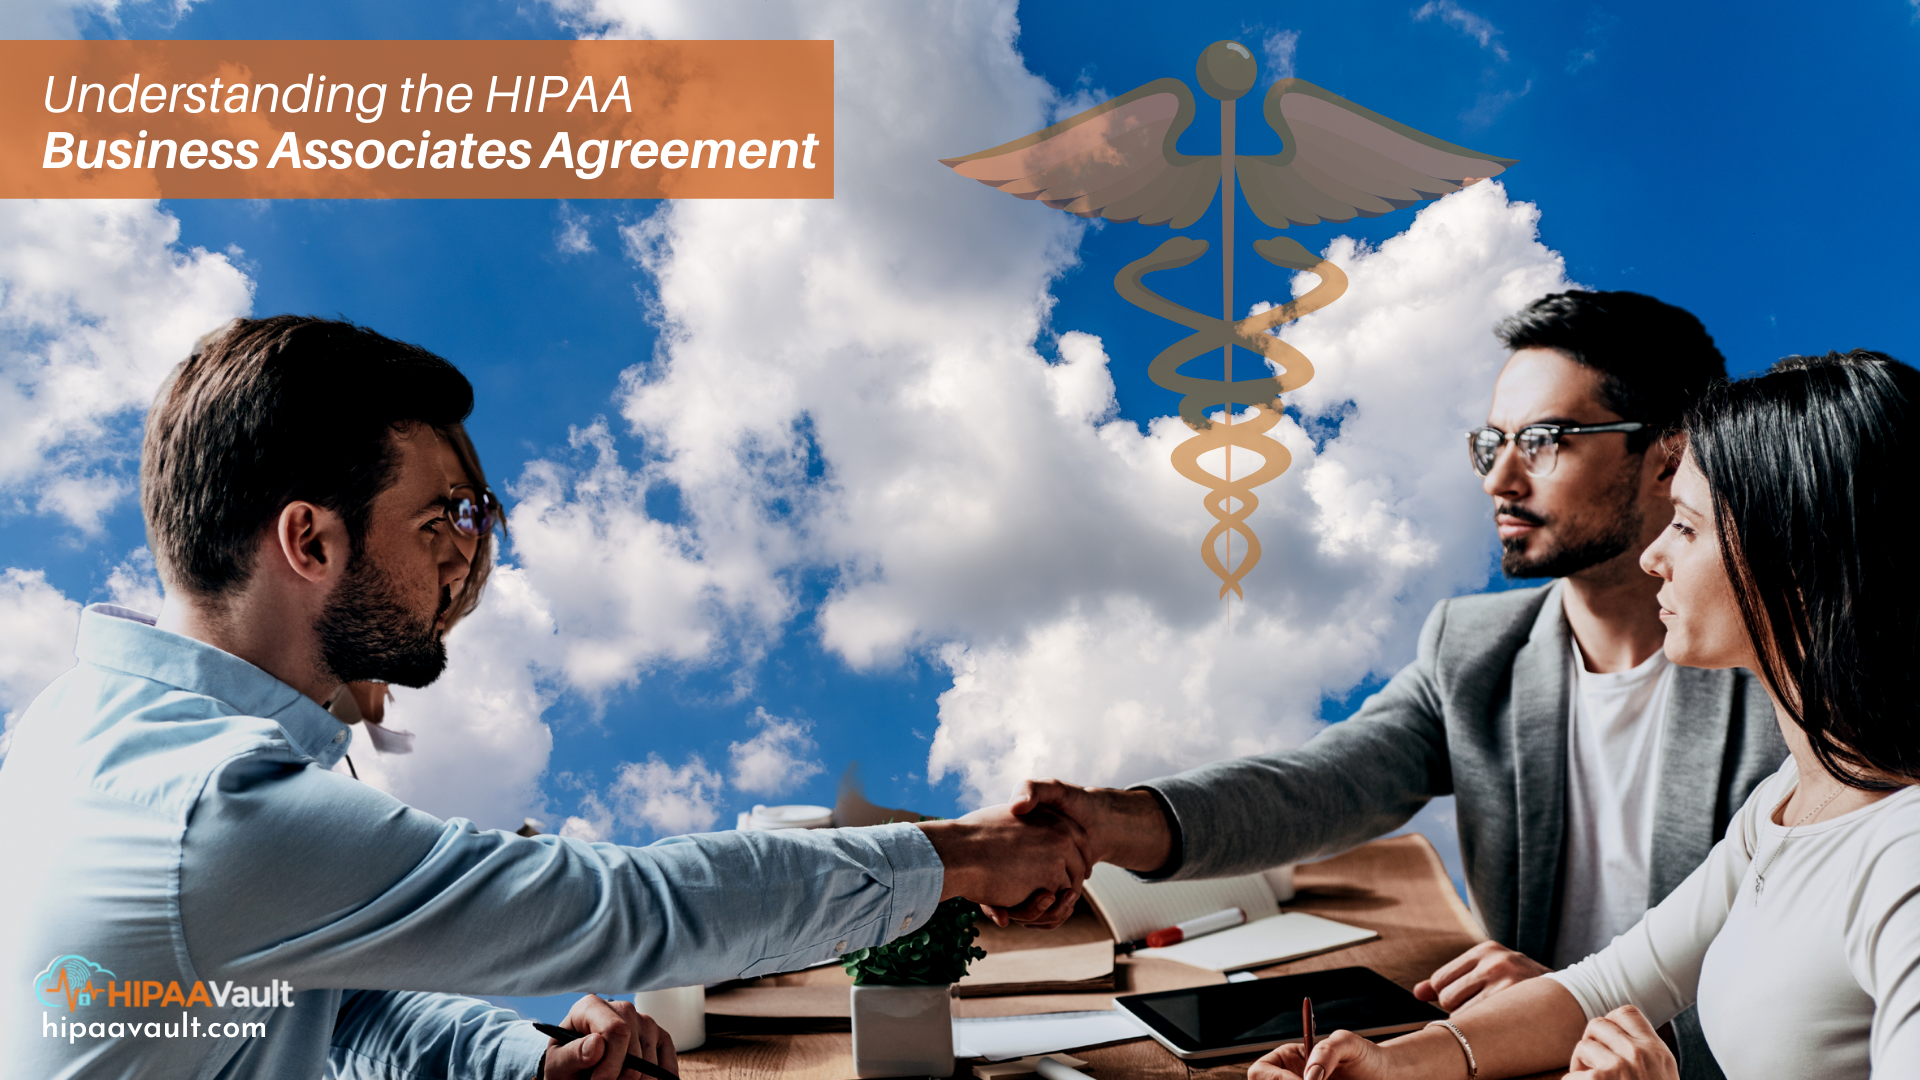 HIPAA Basics I: What is a BAA and Why is it Required to be HIPAA Compliant?